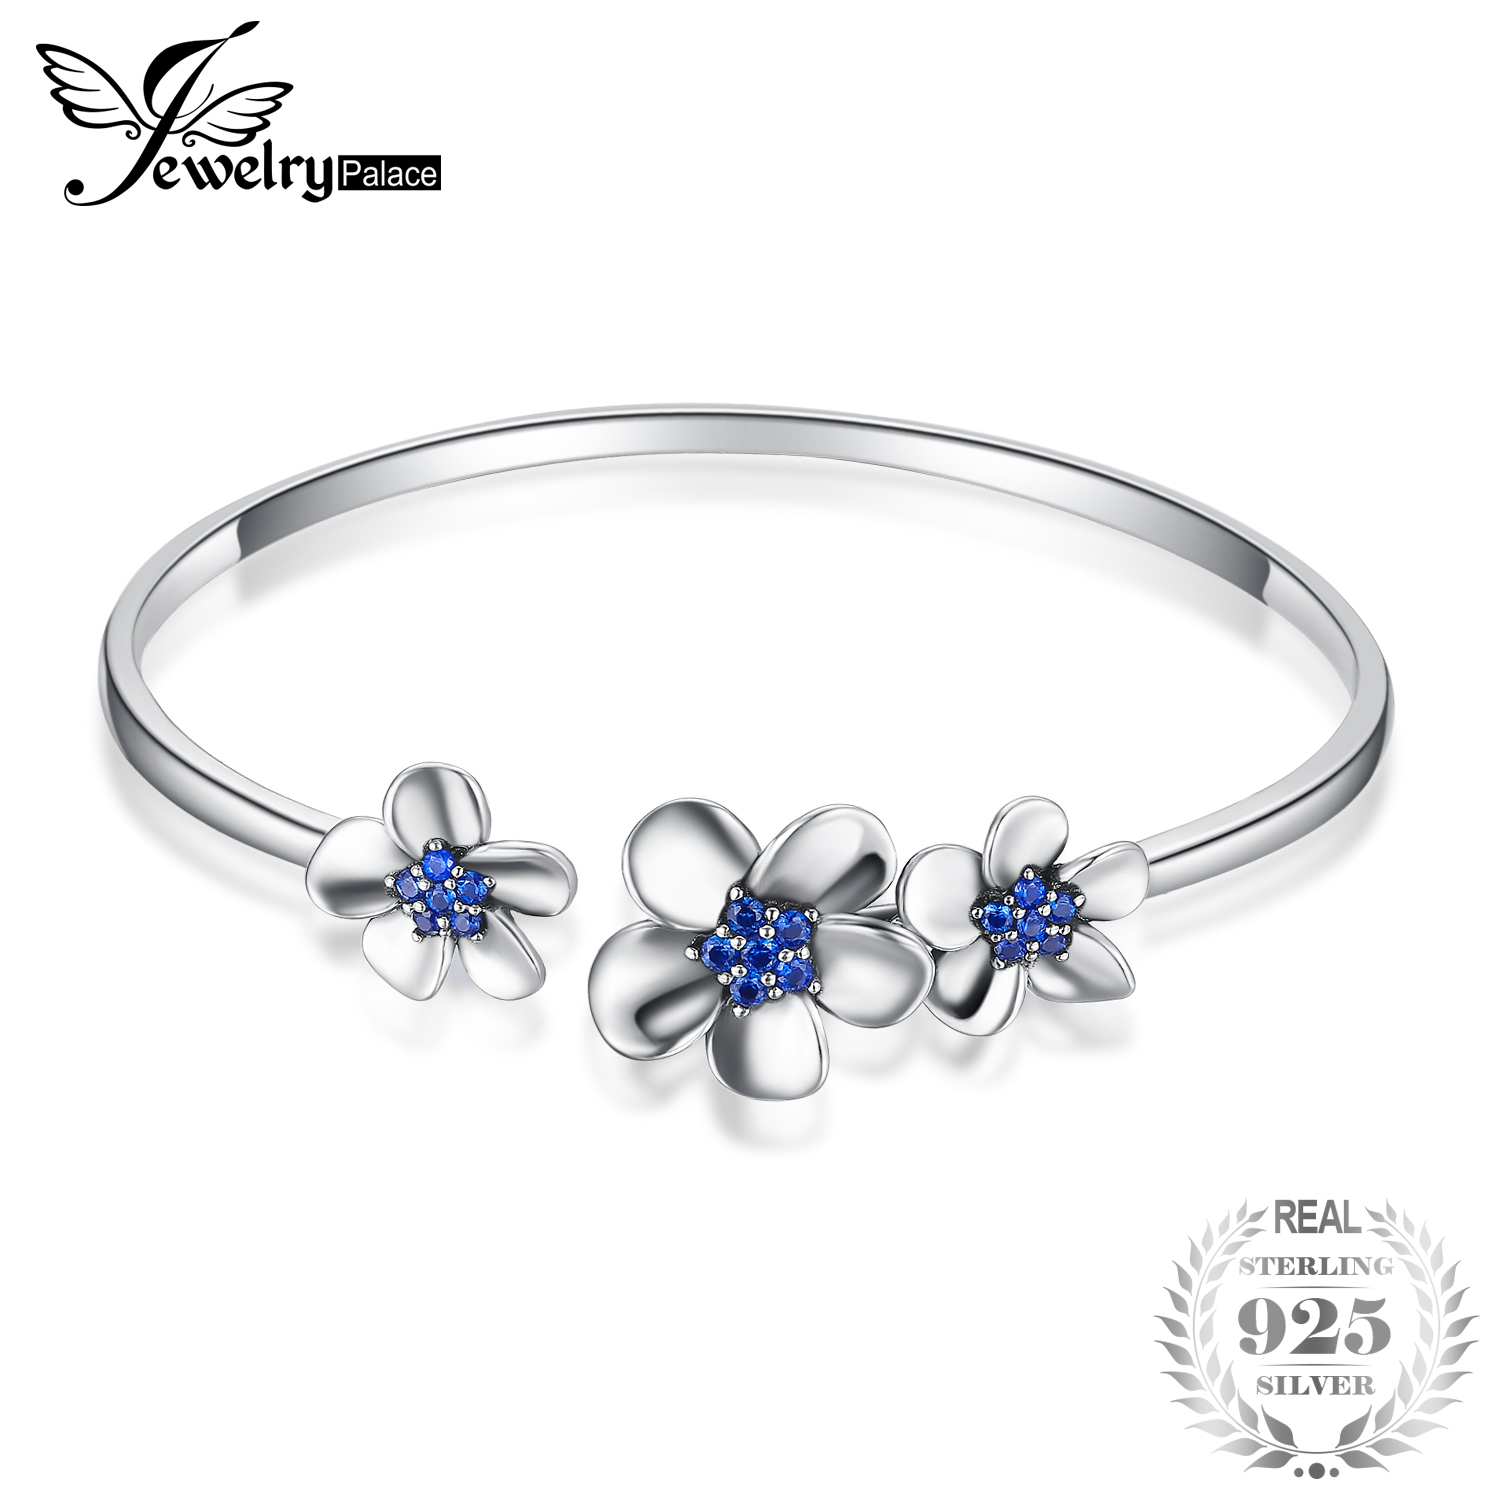 JewelryPalace 3 Sleek Daisy 0.5ct Created Blue Spinal Adjustable Cuff Bracelet 925 Sterling Silver Trendy Open Bangles for Women delicate silver cuff bracelet for women page 3